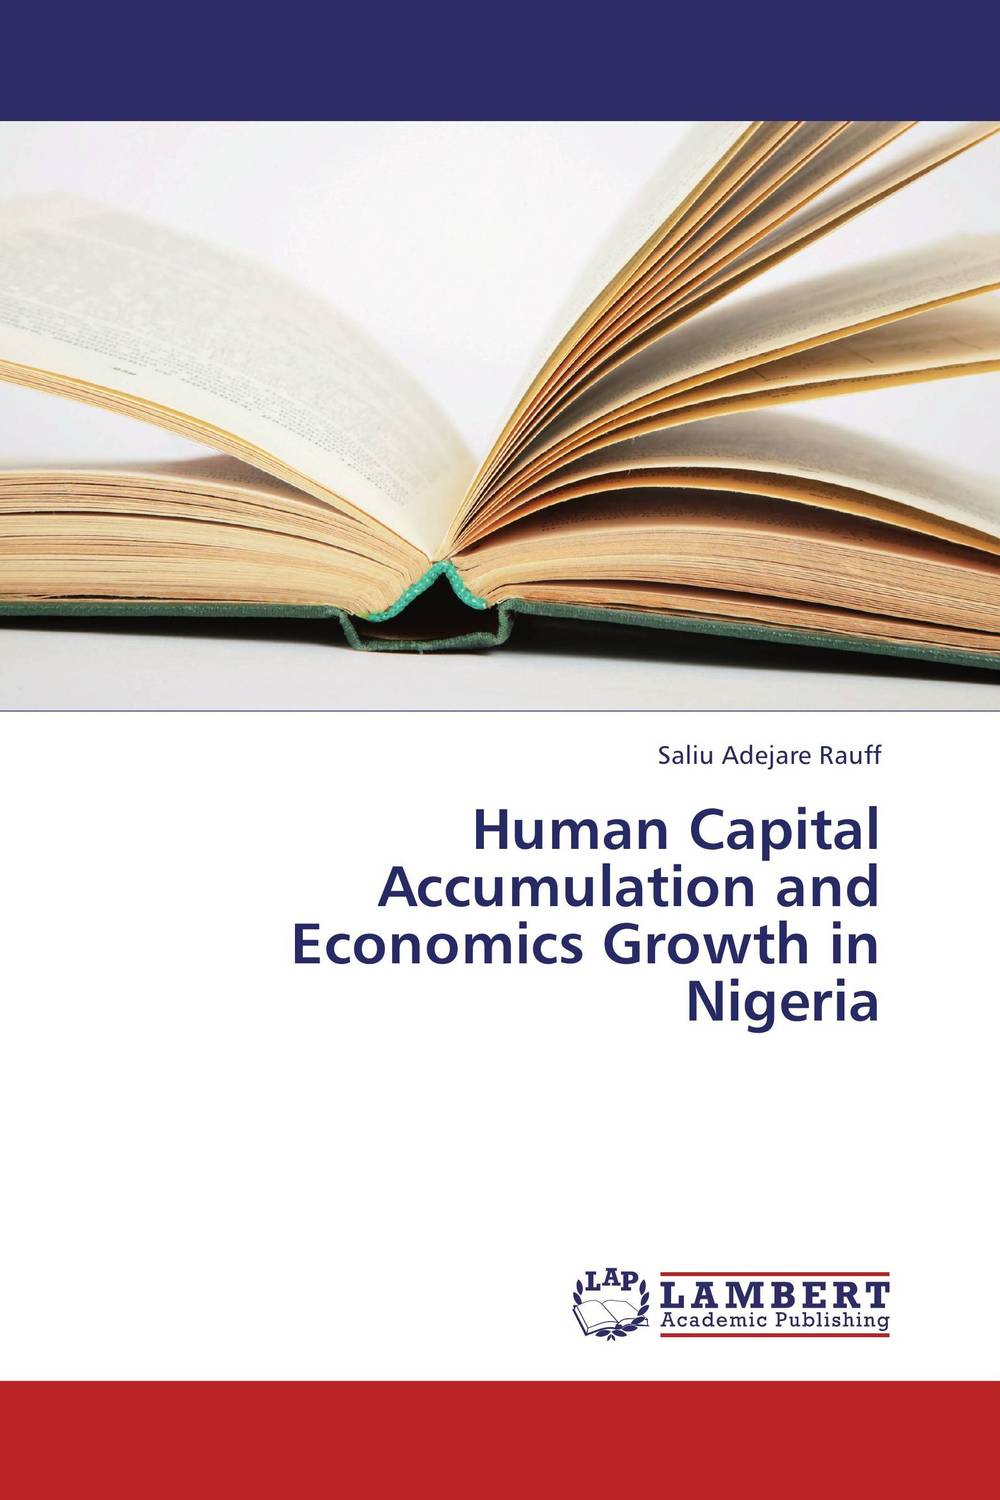 Human Capital Accumulation and Economics Growth in Nigeria khondoker abdul mottaleb human capital and industrial development